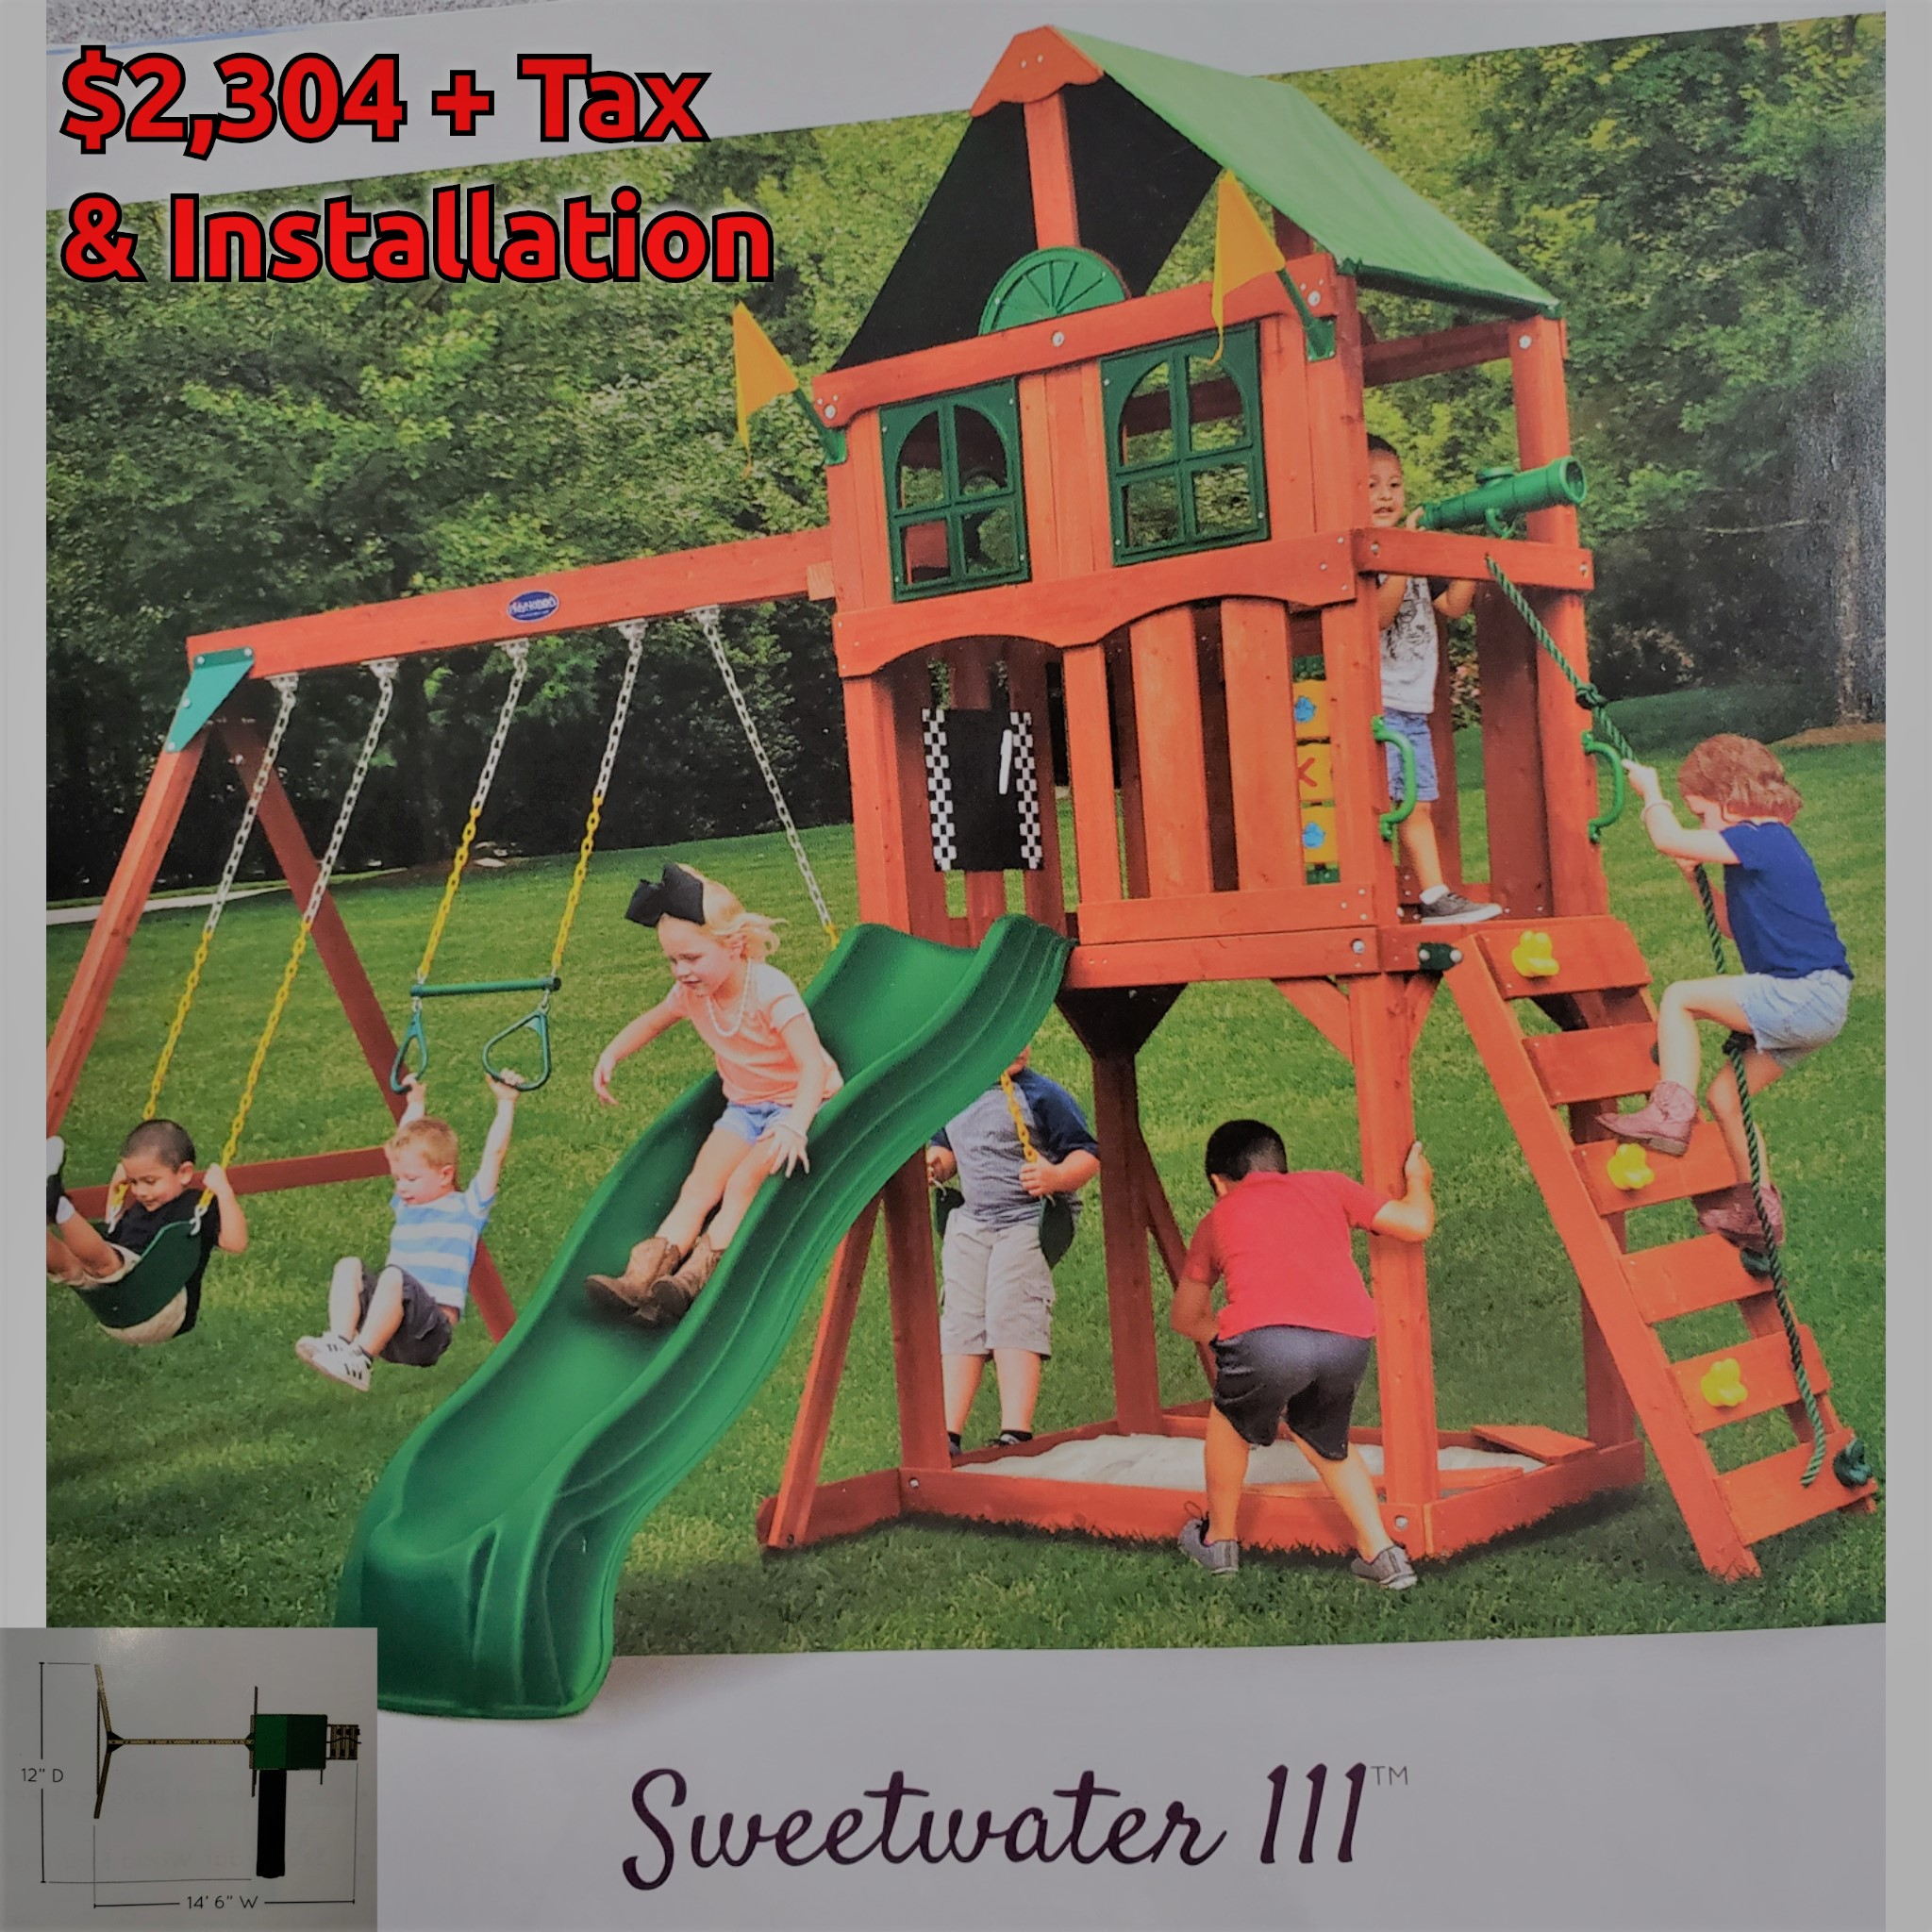 Sweetwater 3 - $2,304